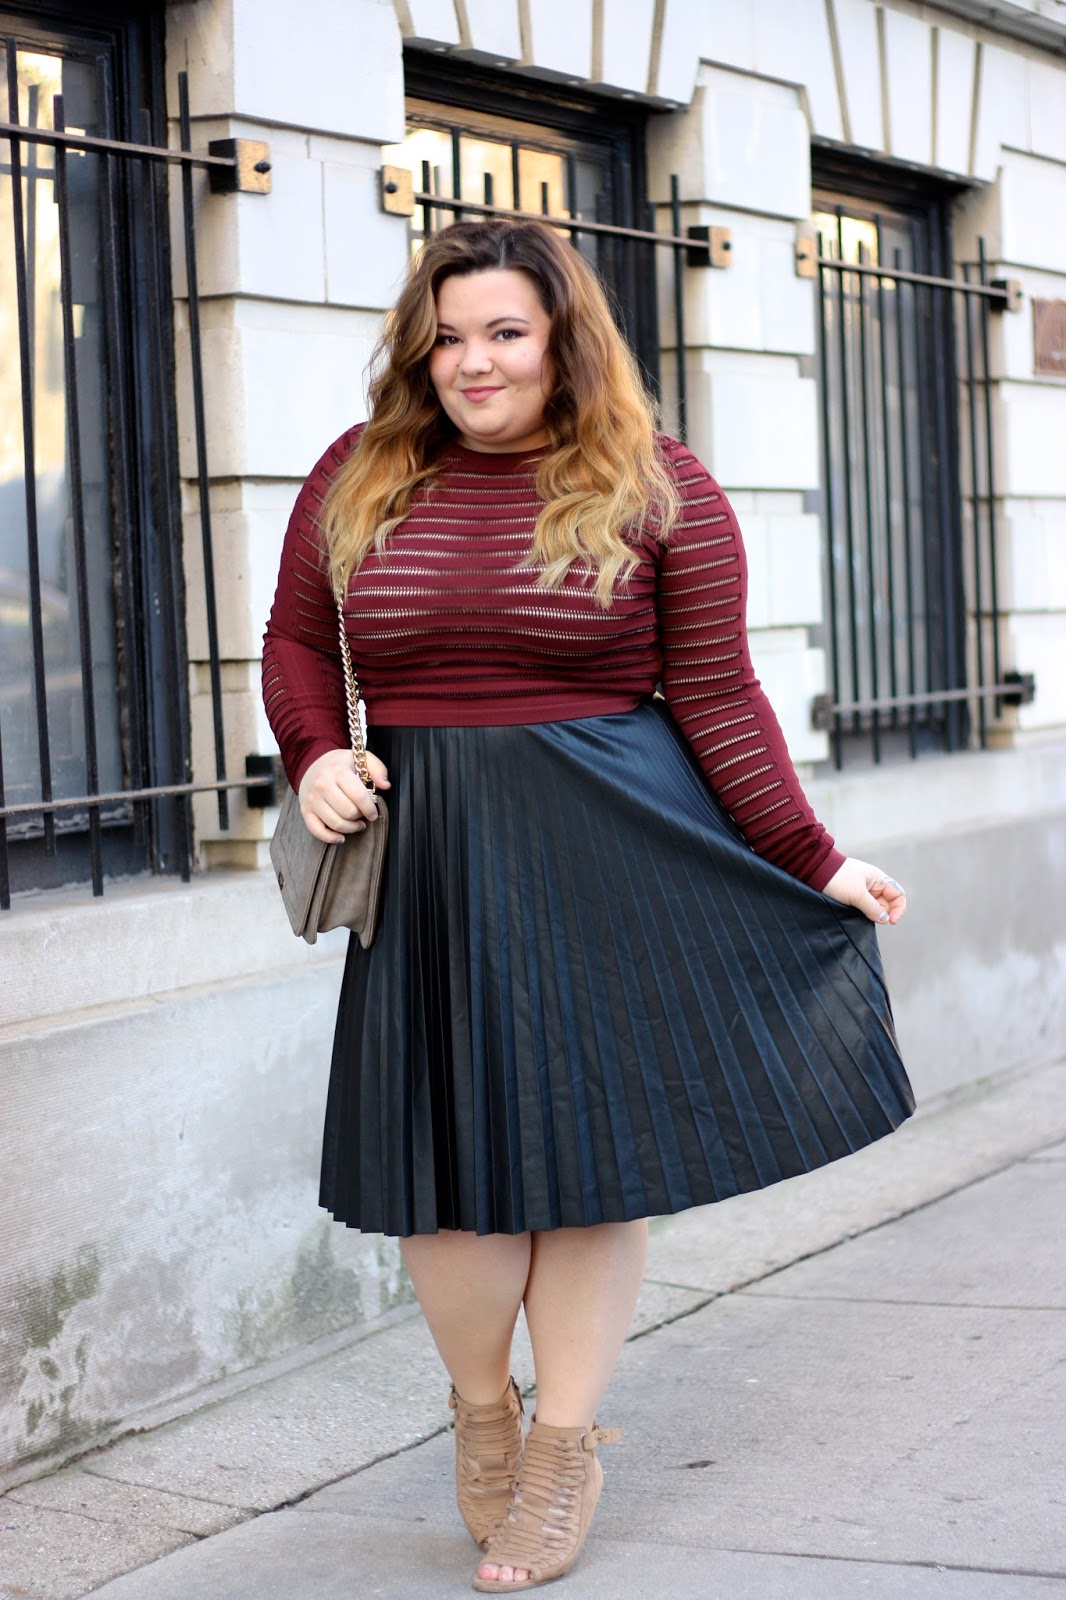 Leather Pleats Natalie In The City A Chicago Plus Size